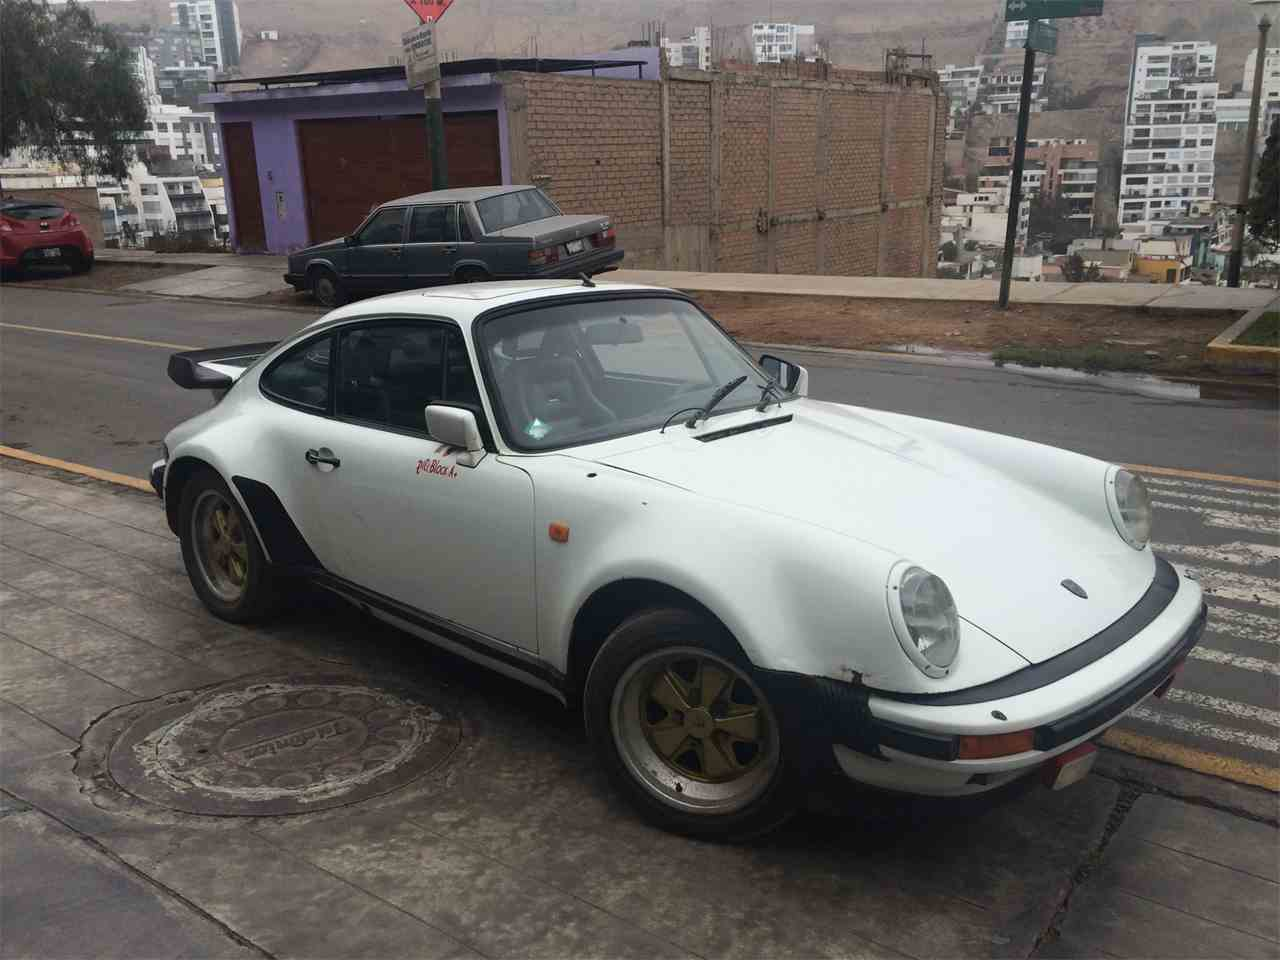 1984 porsche 911 carrera for sale classiccars cc 885328 large picture of 84 911 carrera iz4g sciox Image collections